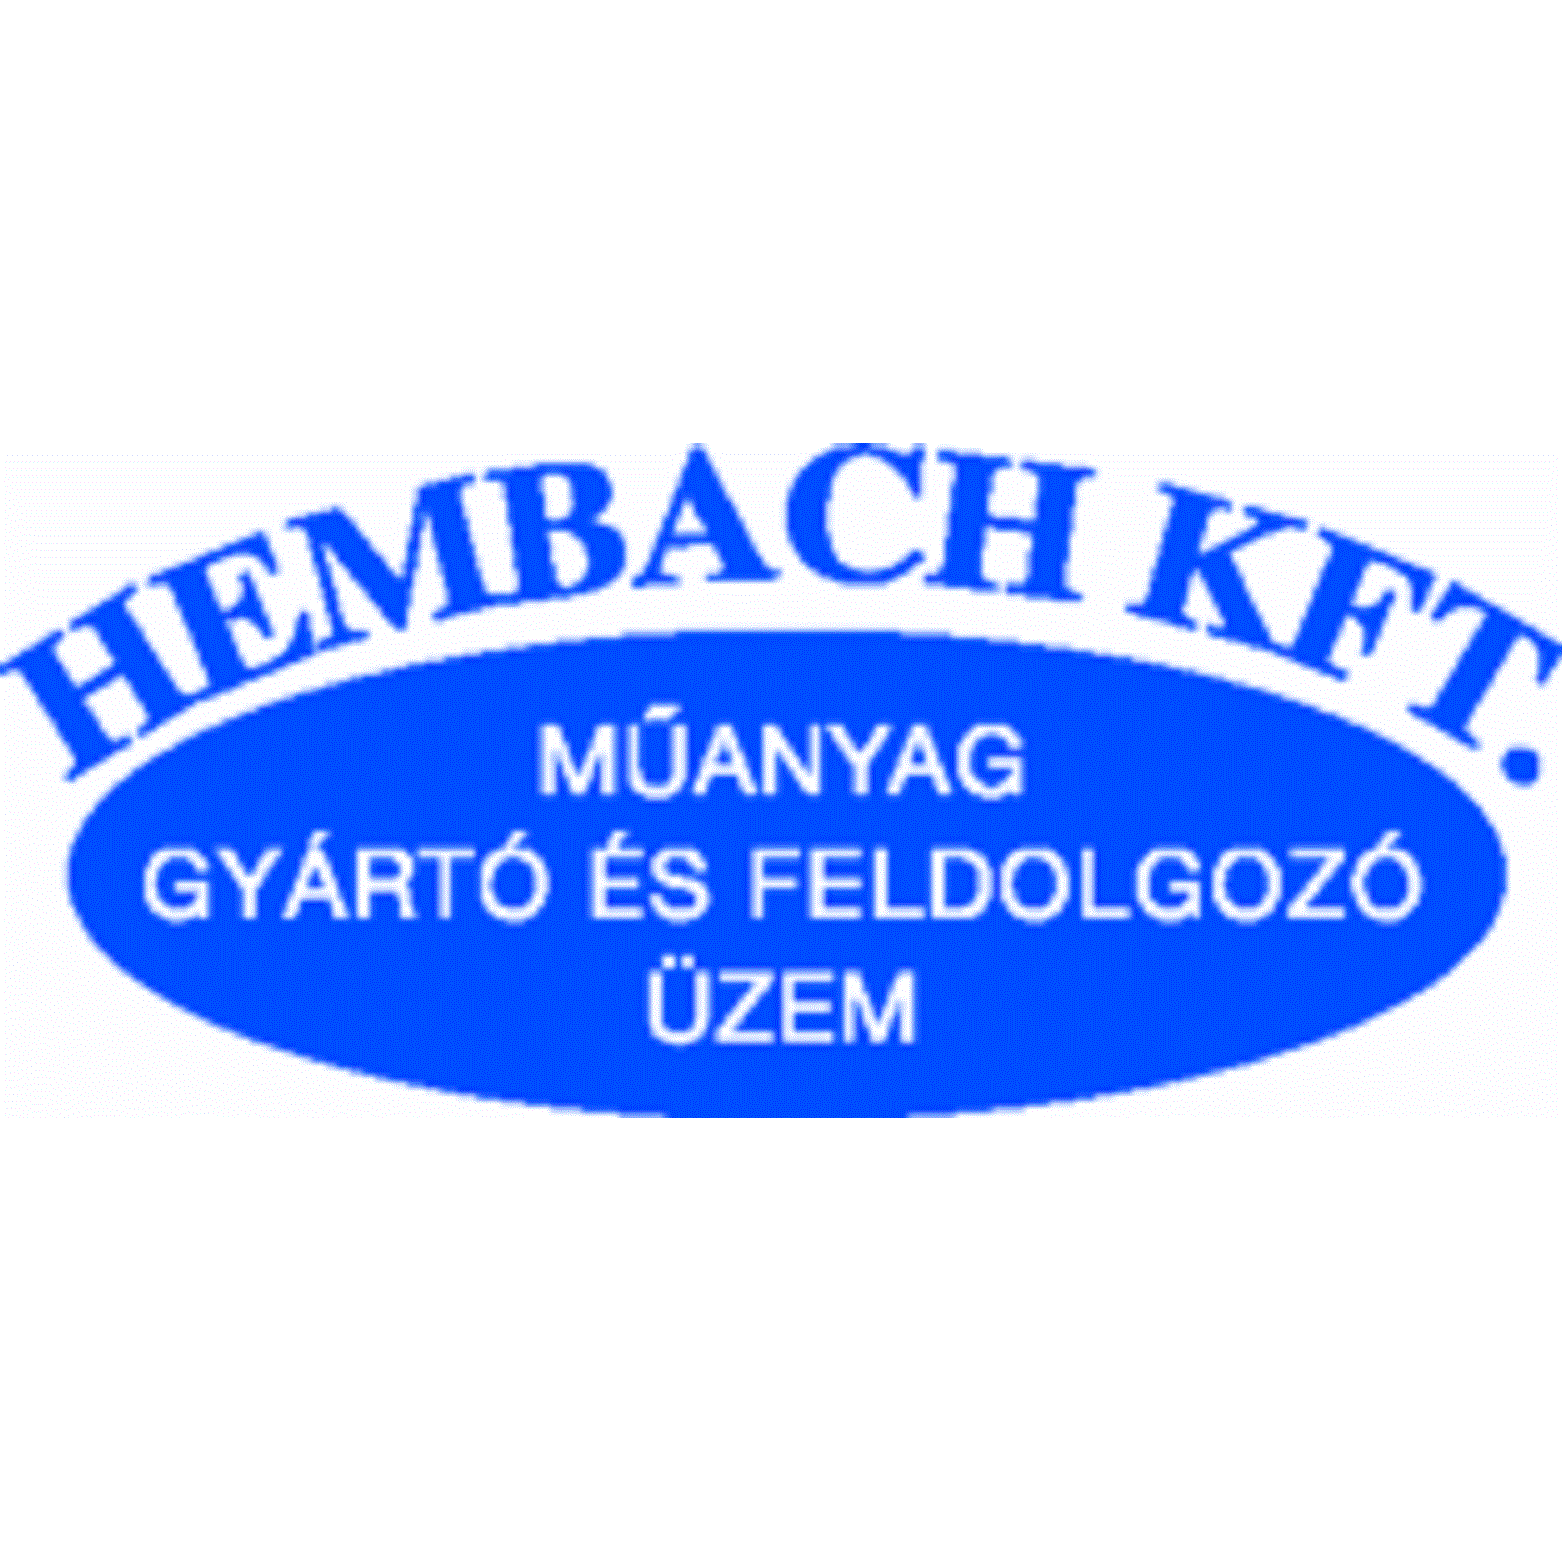 Hembach kft